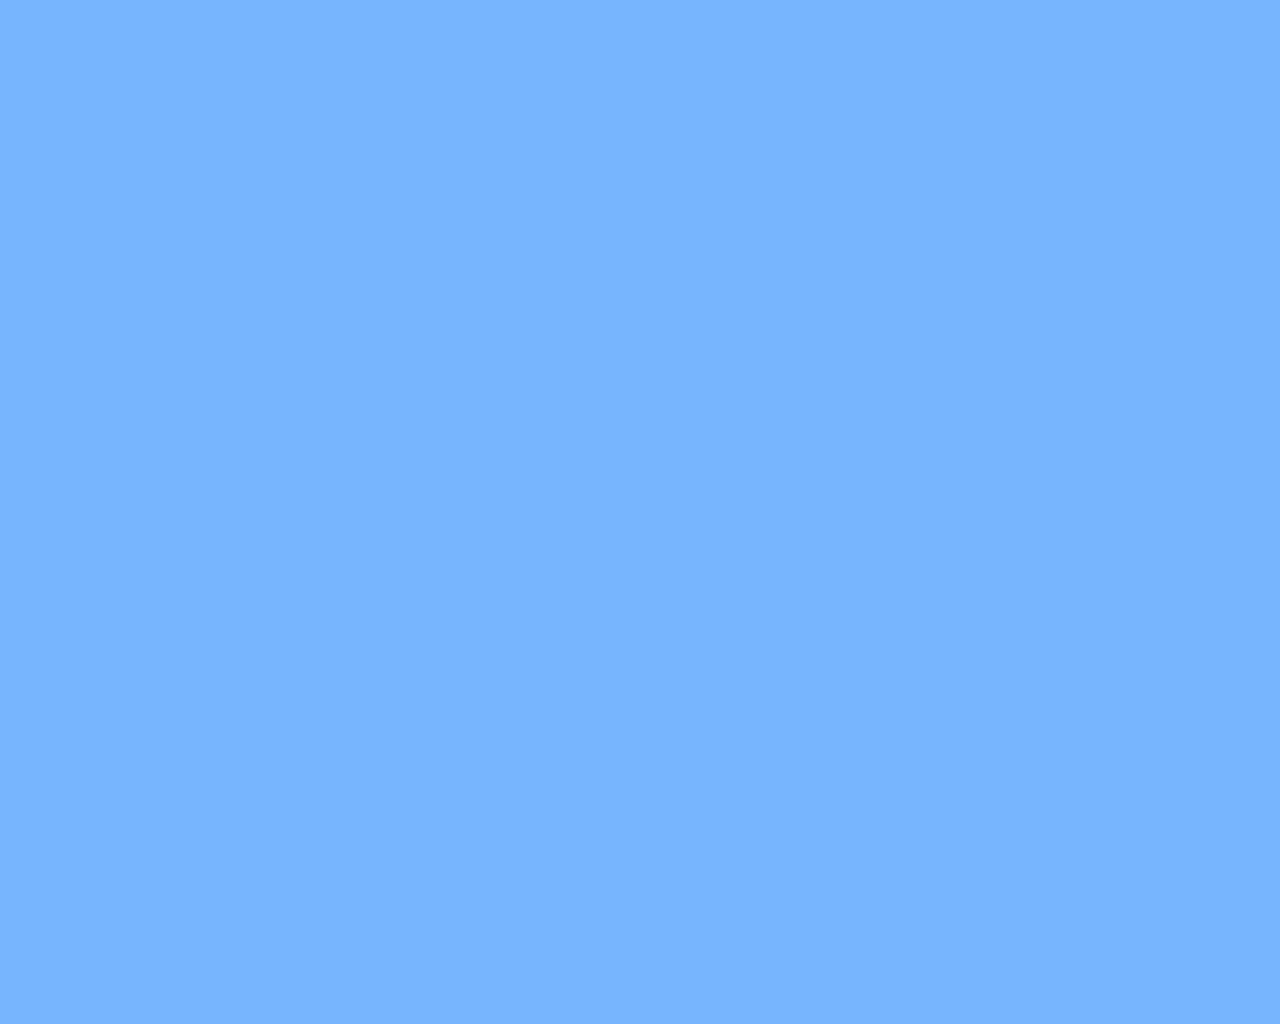 1280x1024 French Sky Blue Solid Color Background